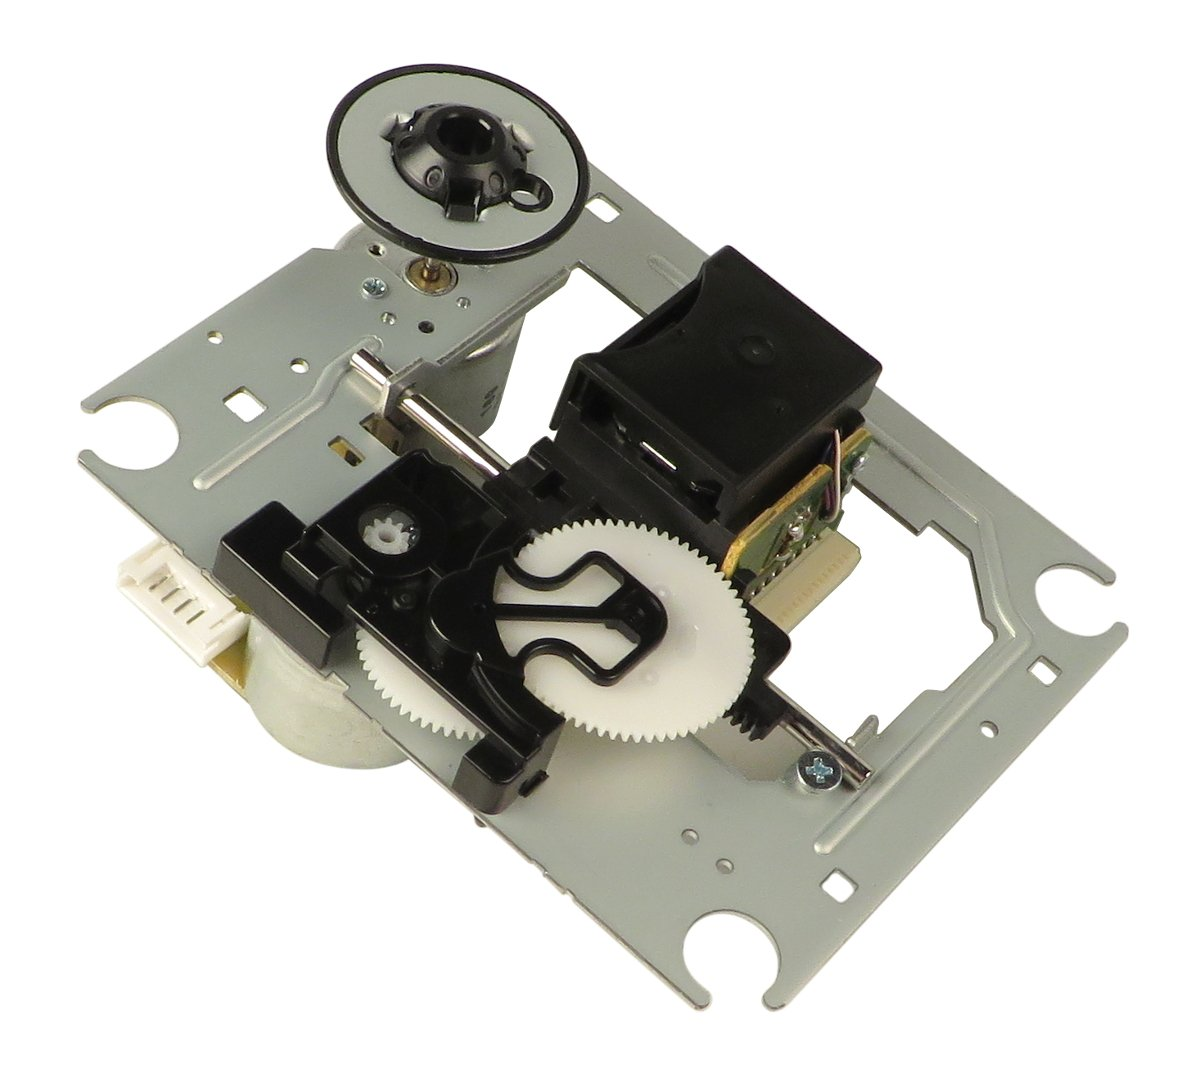 Denon 900302100200S  Pickup Assembly for CC4003 900302100200S